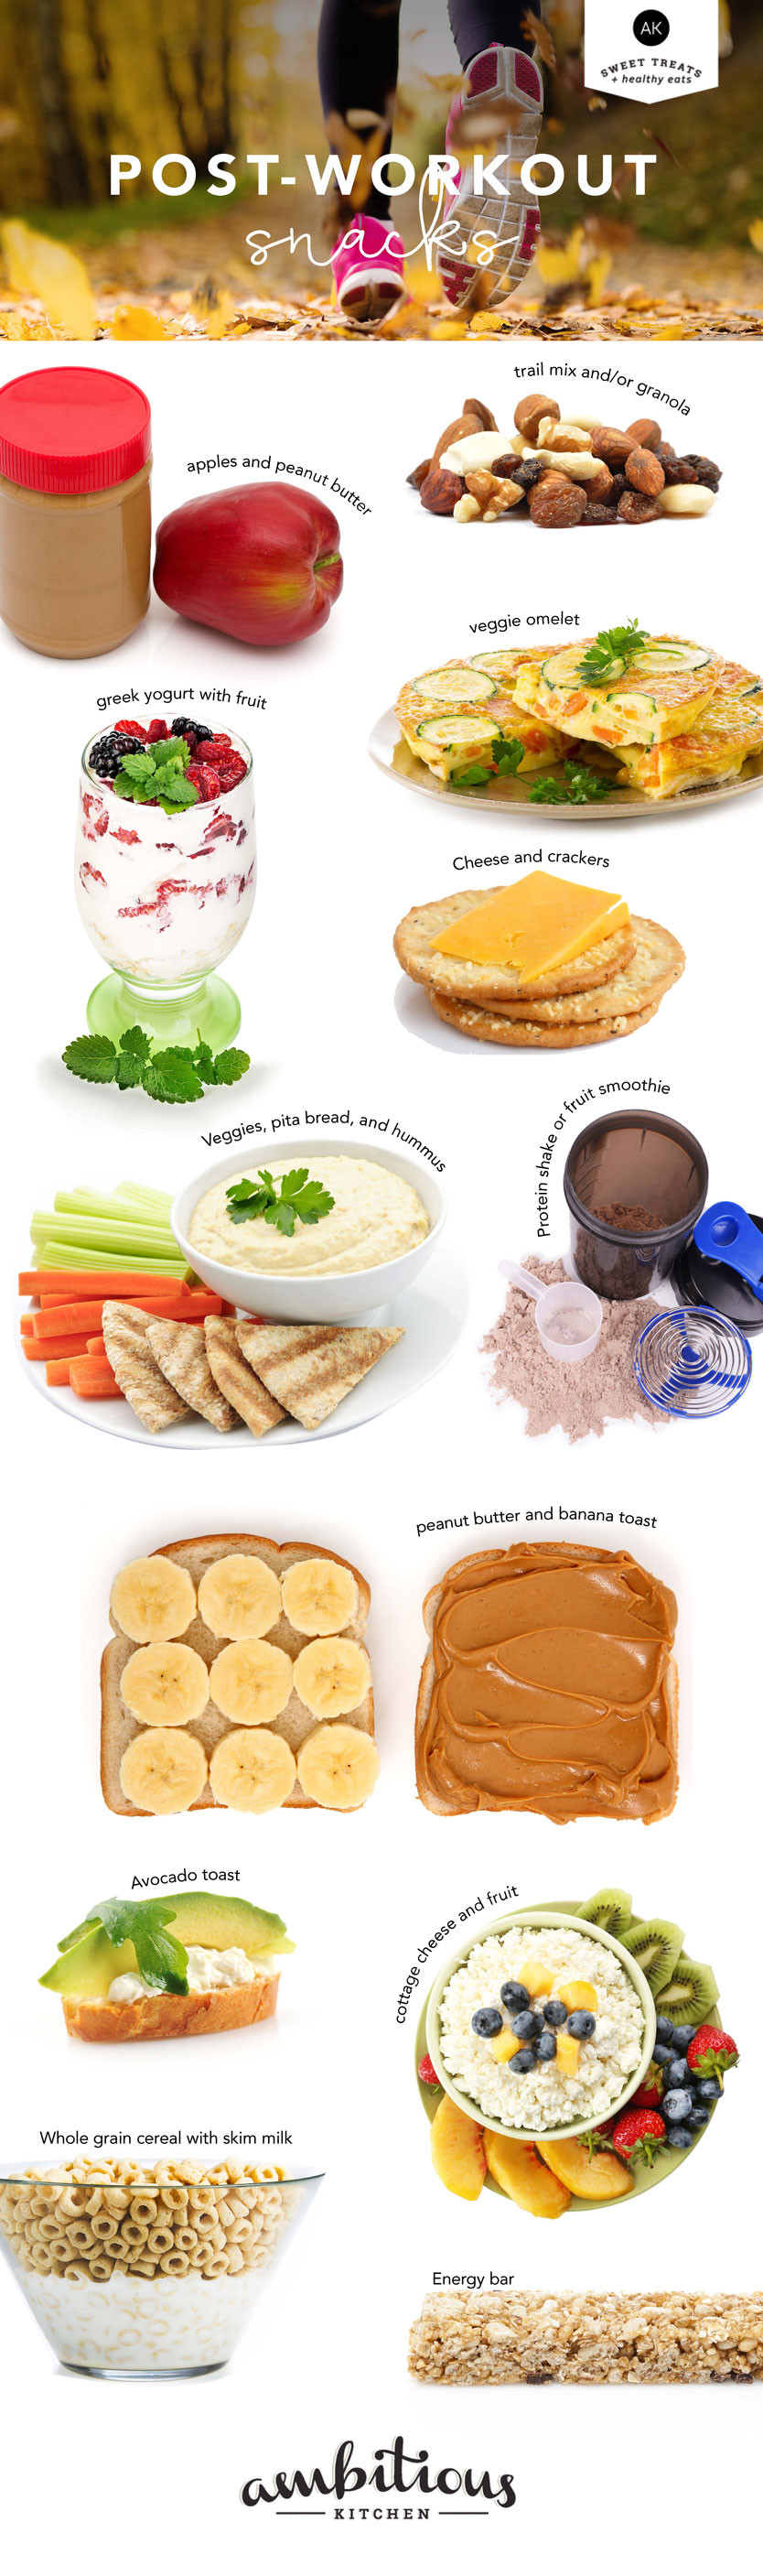 Healthy Workout Snacks  Wellness Wednesday 12 Healthy Post Workout Snacks When